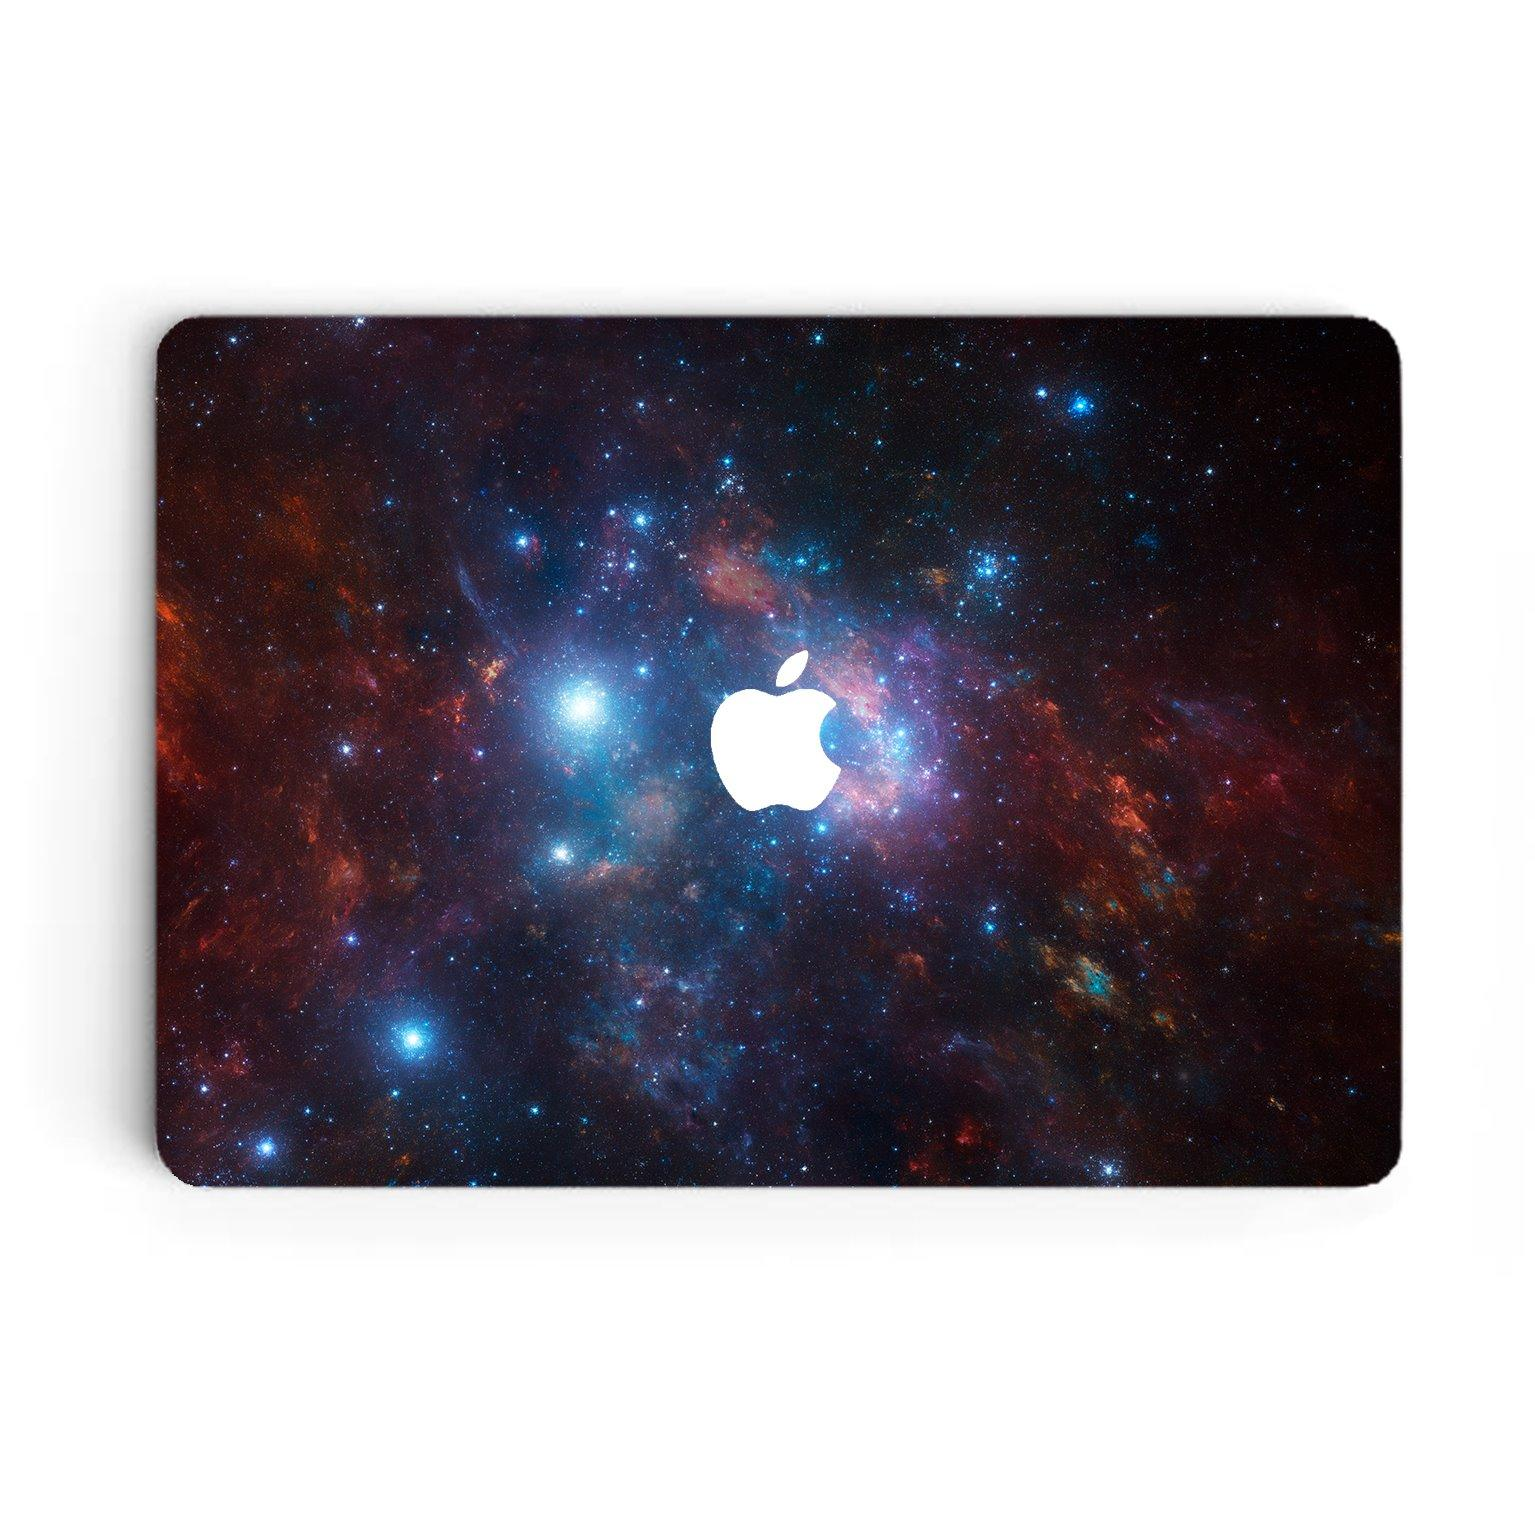 Price Laptop Macbook Skin Sticker Decal Galaxy For Air 13 Inch Instock Dassi Decal Online